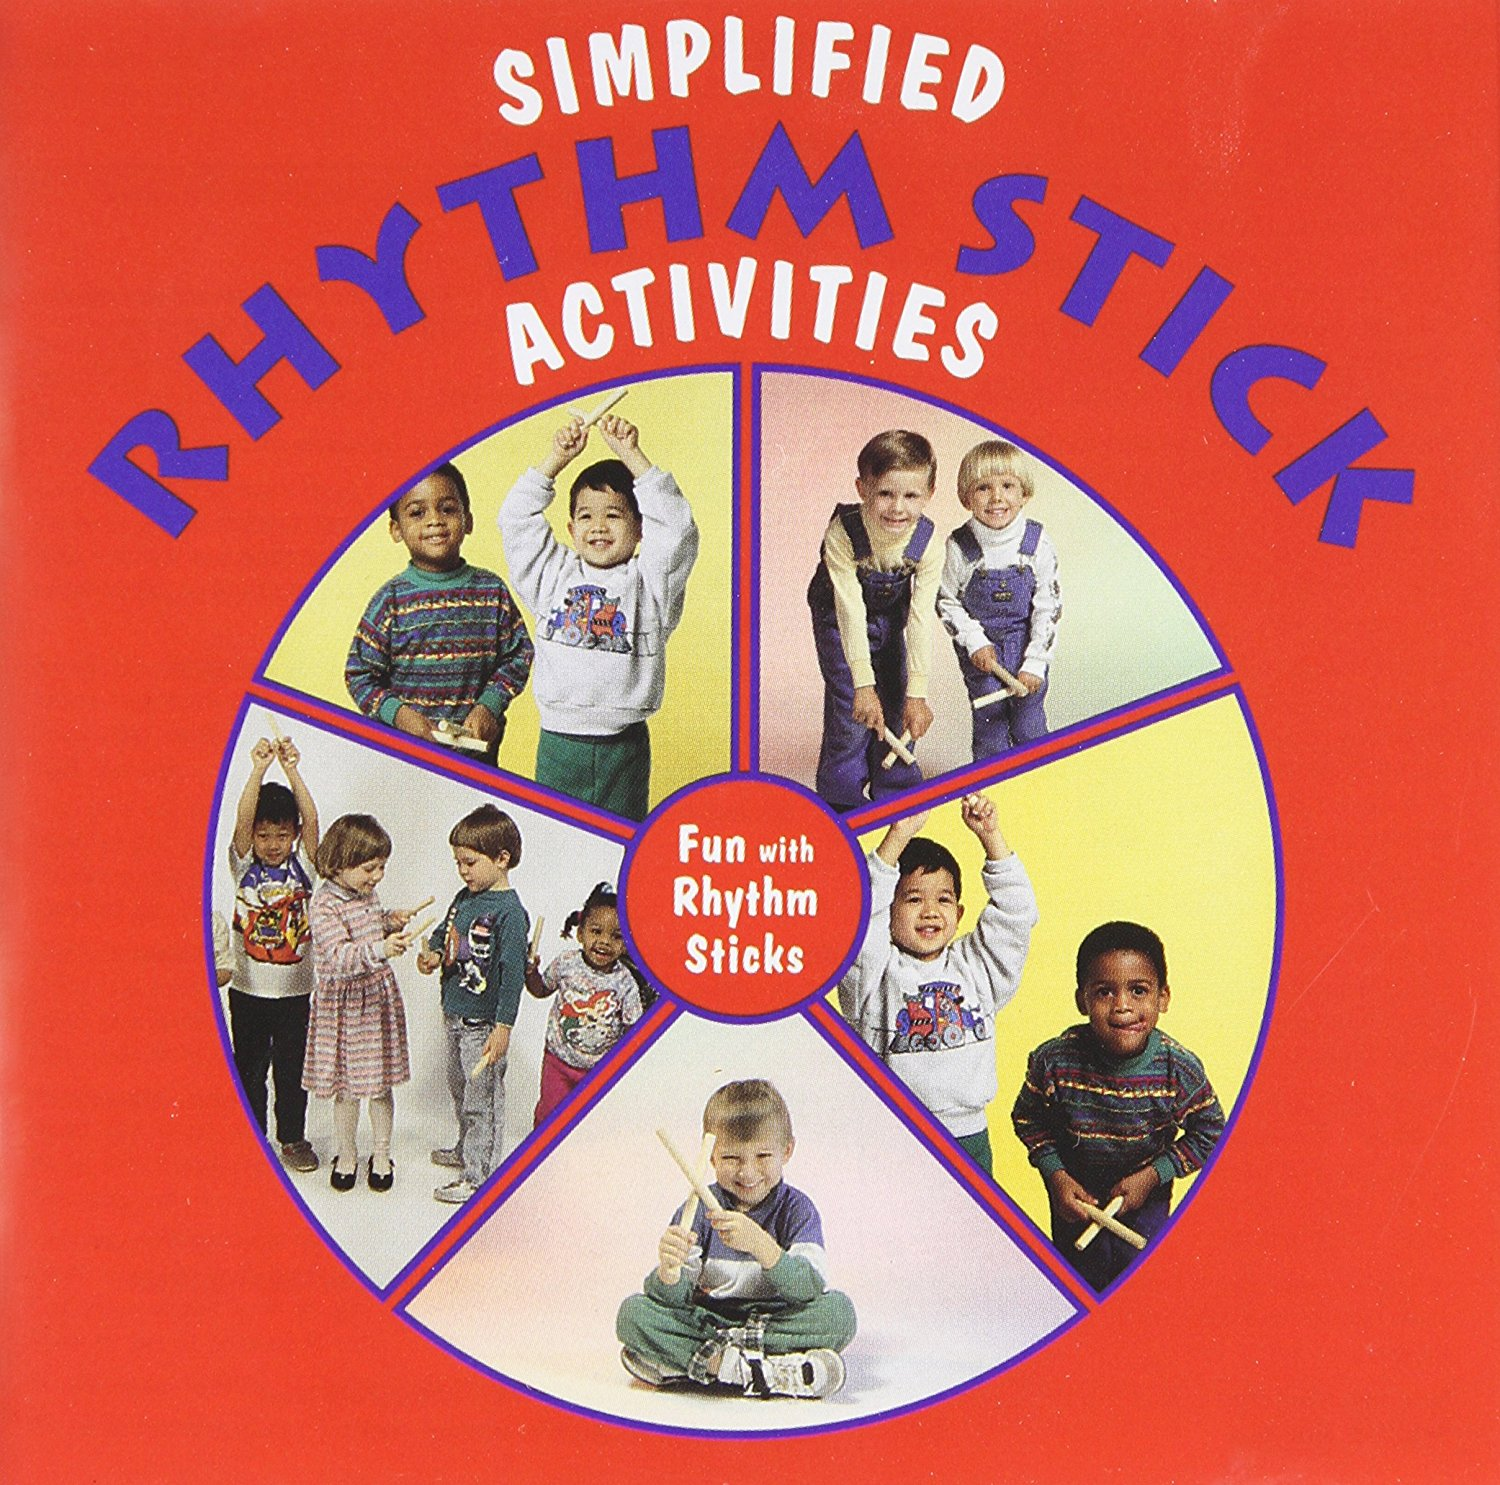 Simplified Rhythm Stick Activities - Tap Your Way To Fun Cd Kimbo Educational